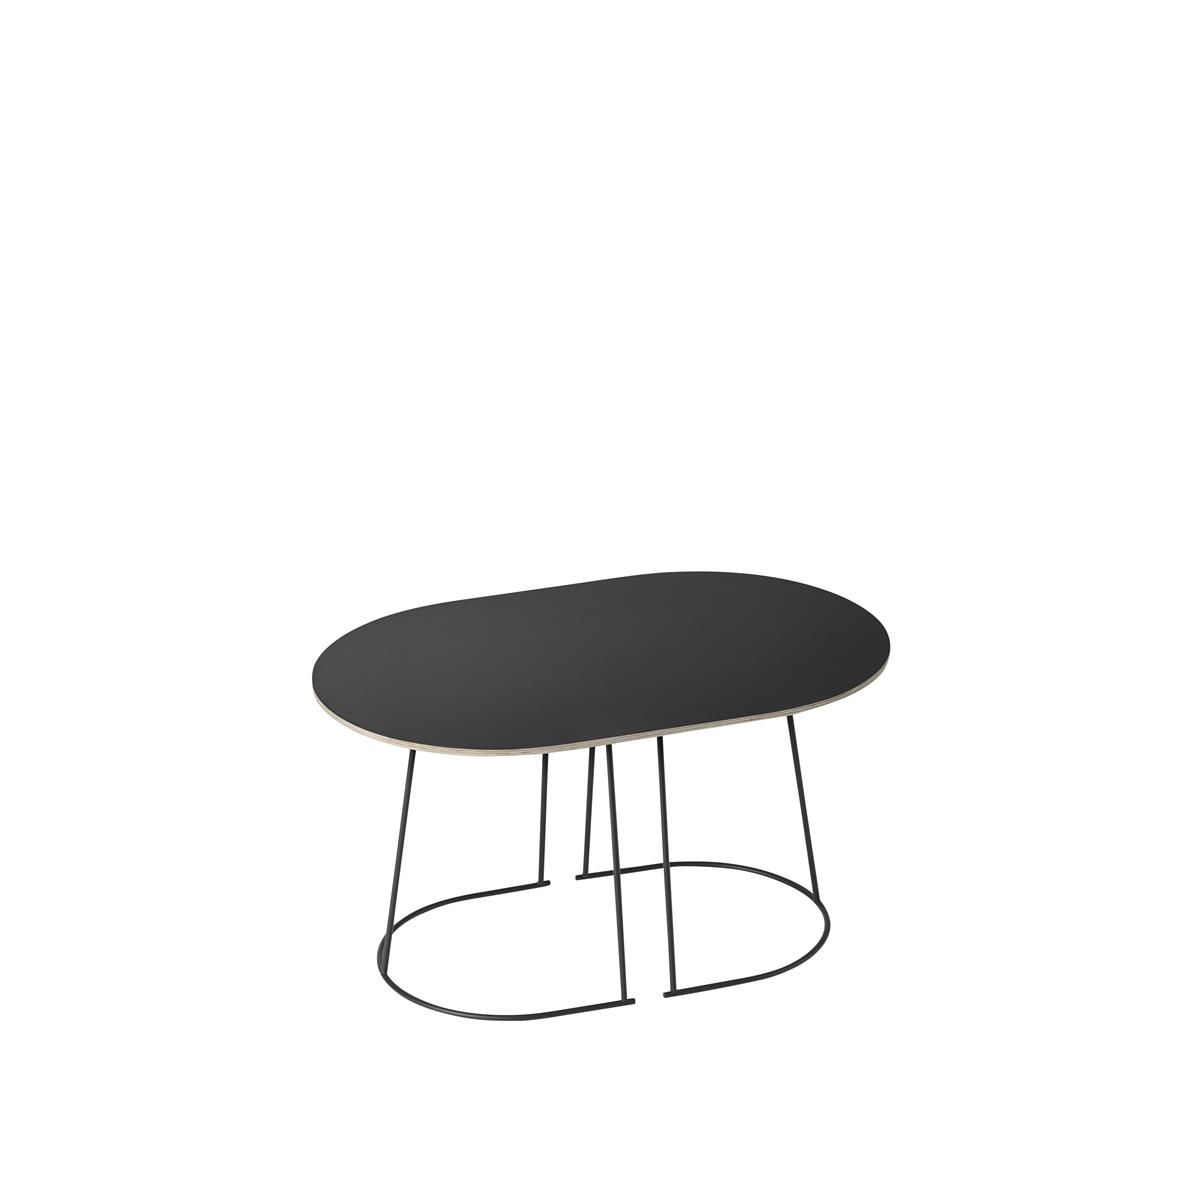 Airy Coffee Table / Small Black - Nanolaminate